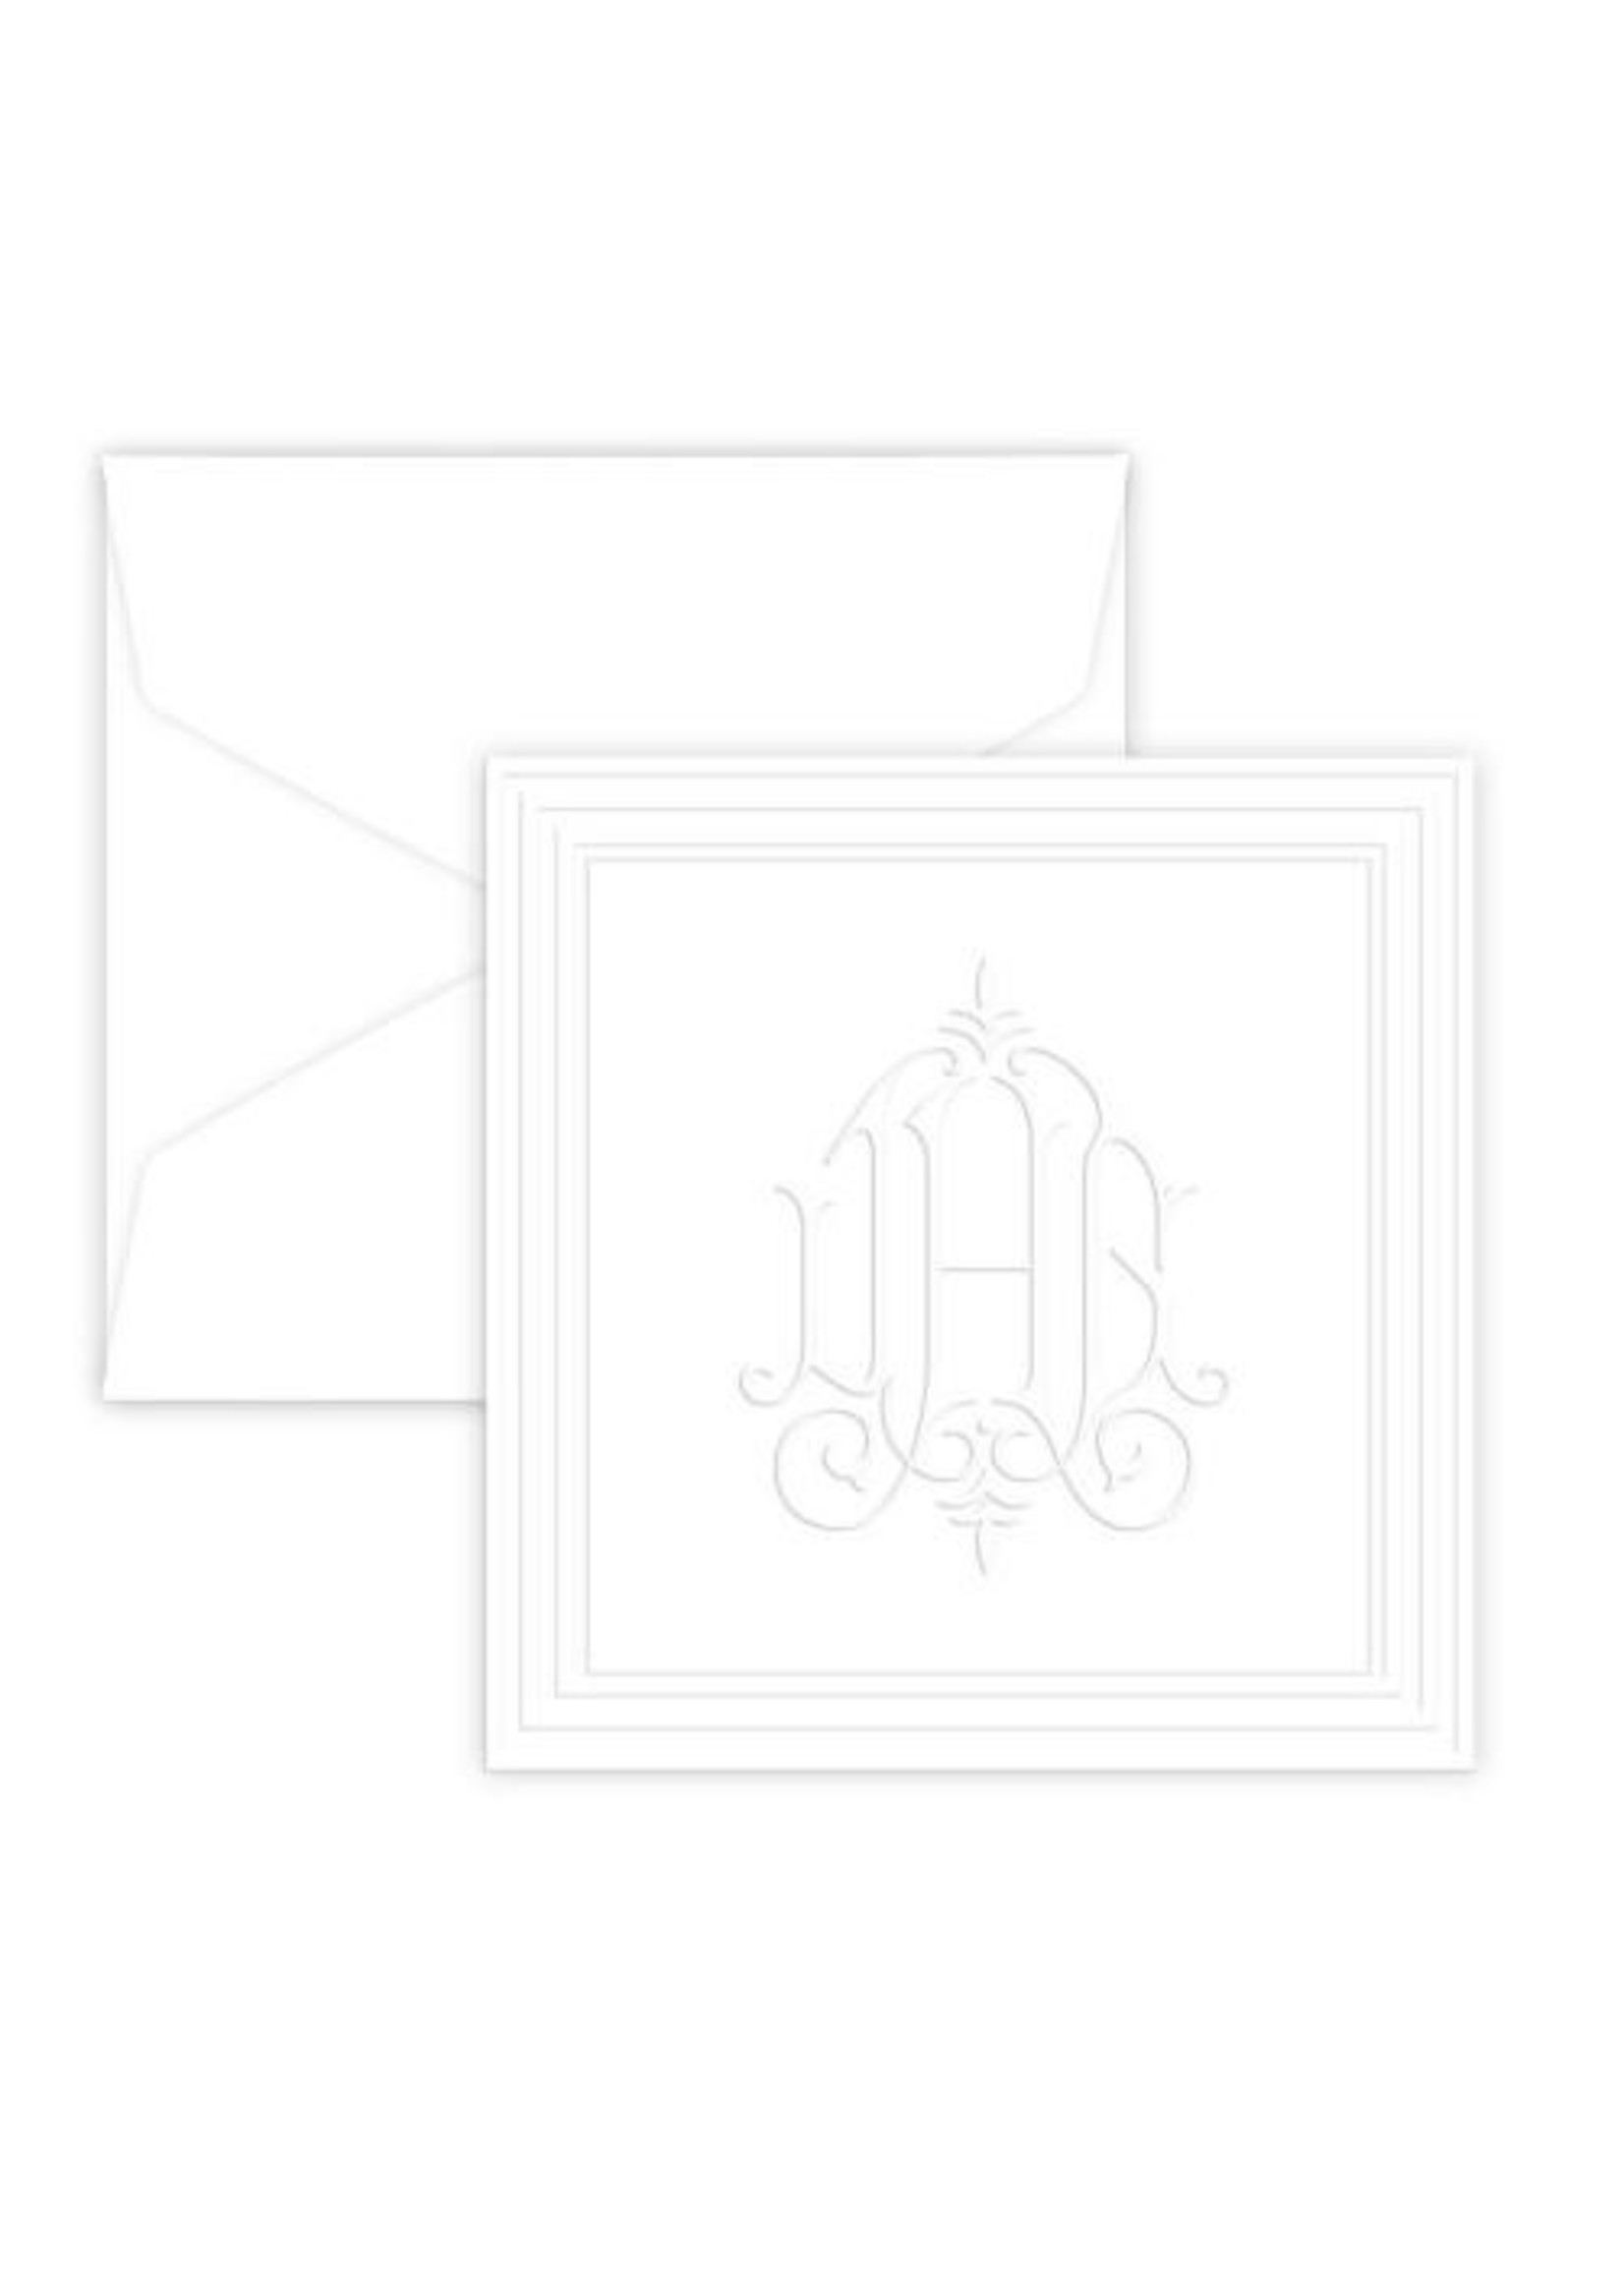 Embossed Graphics Henley Monogram Enclosure Cards QTY 50